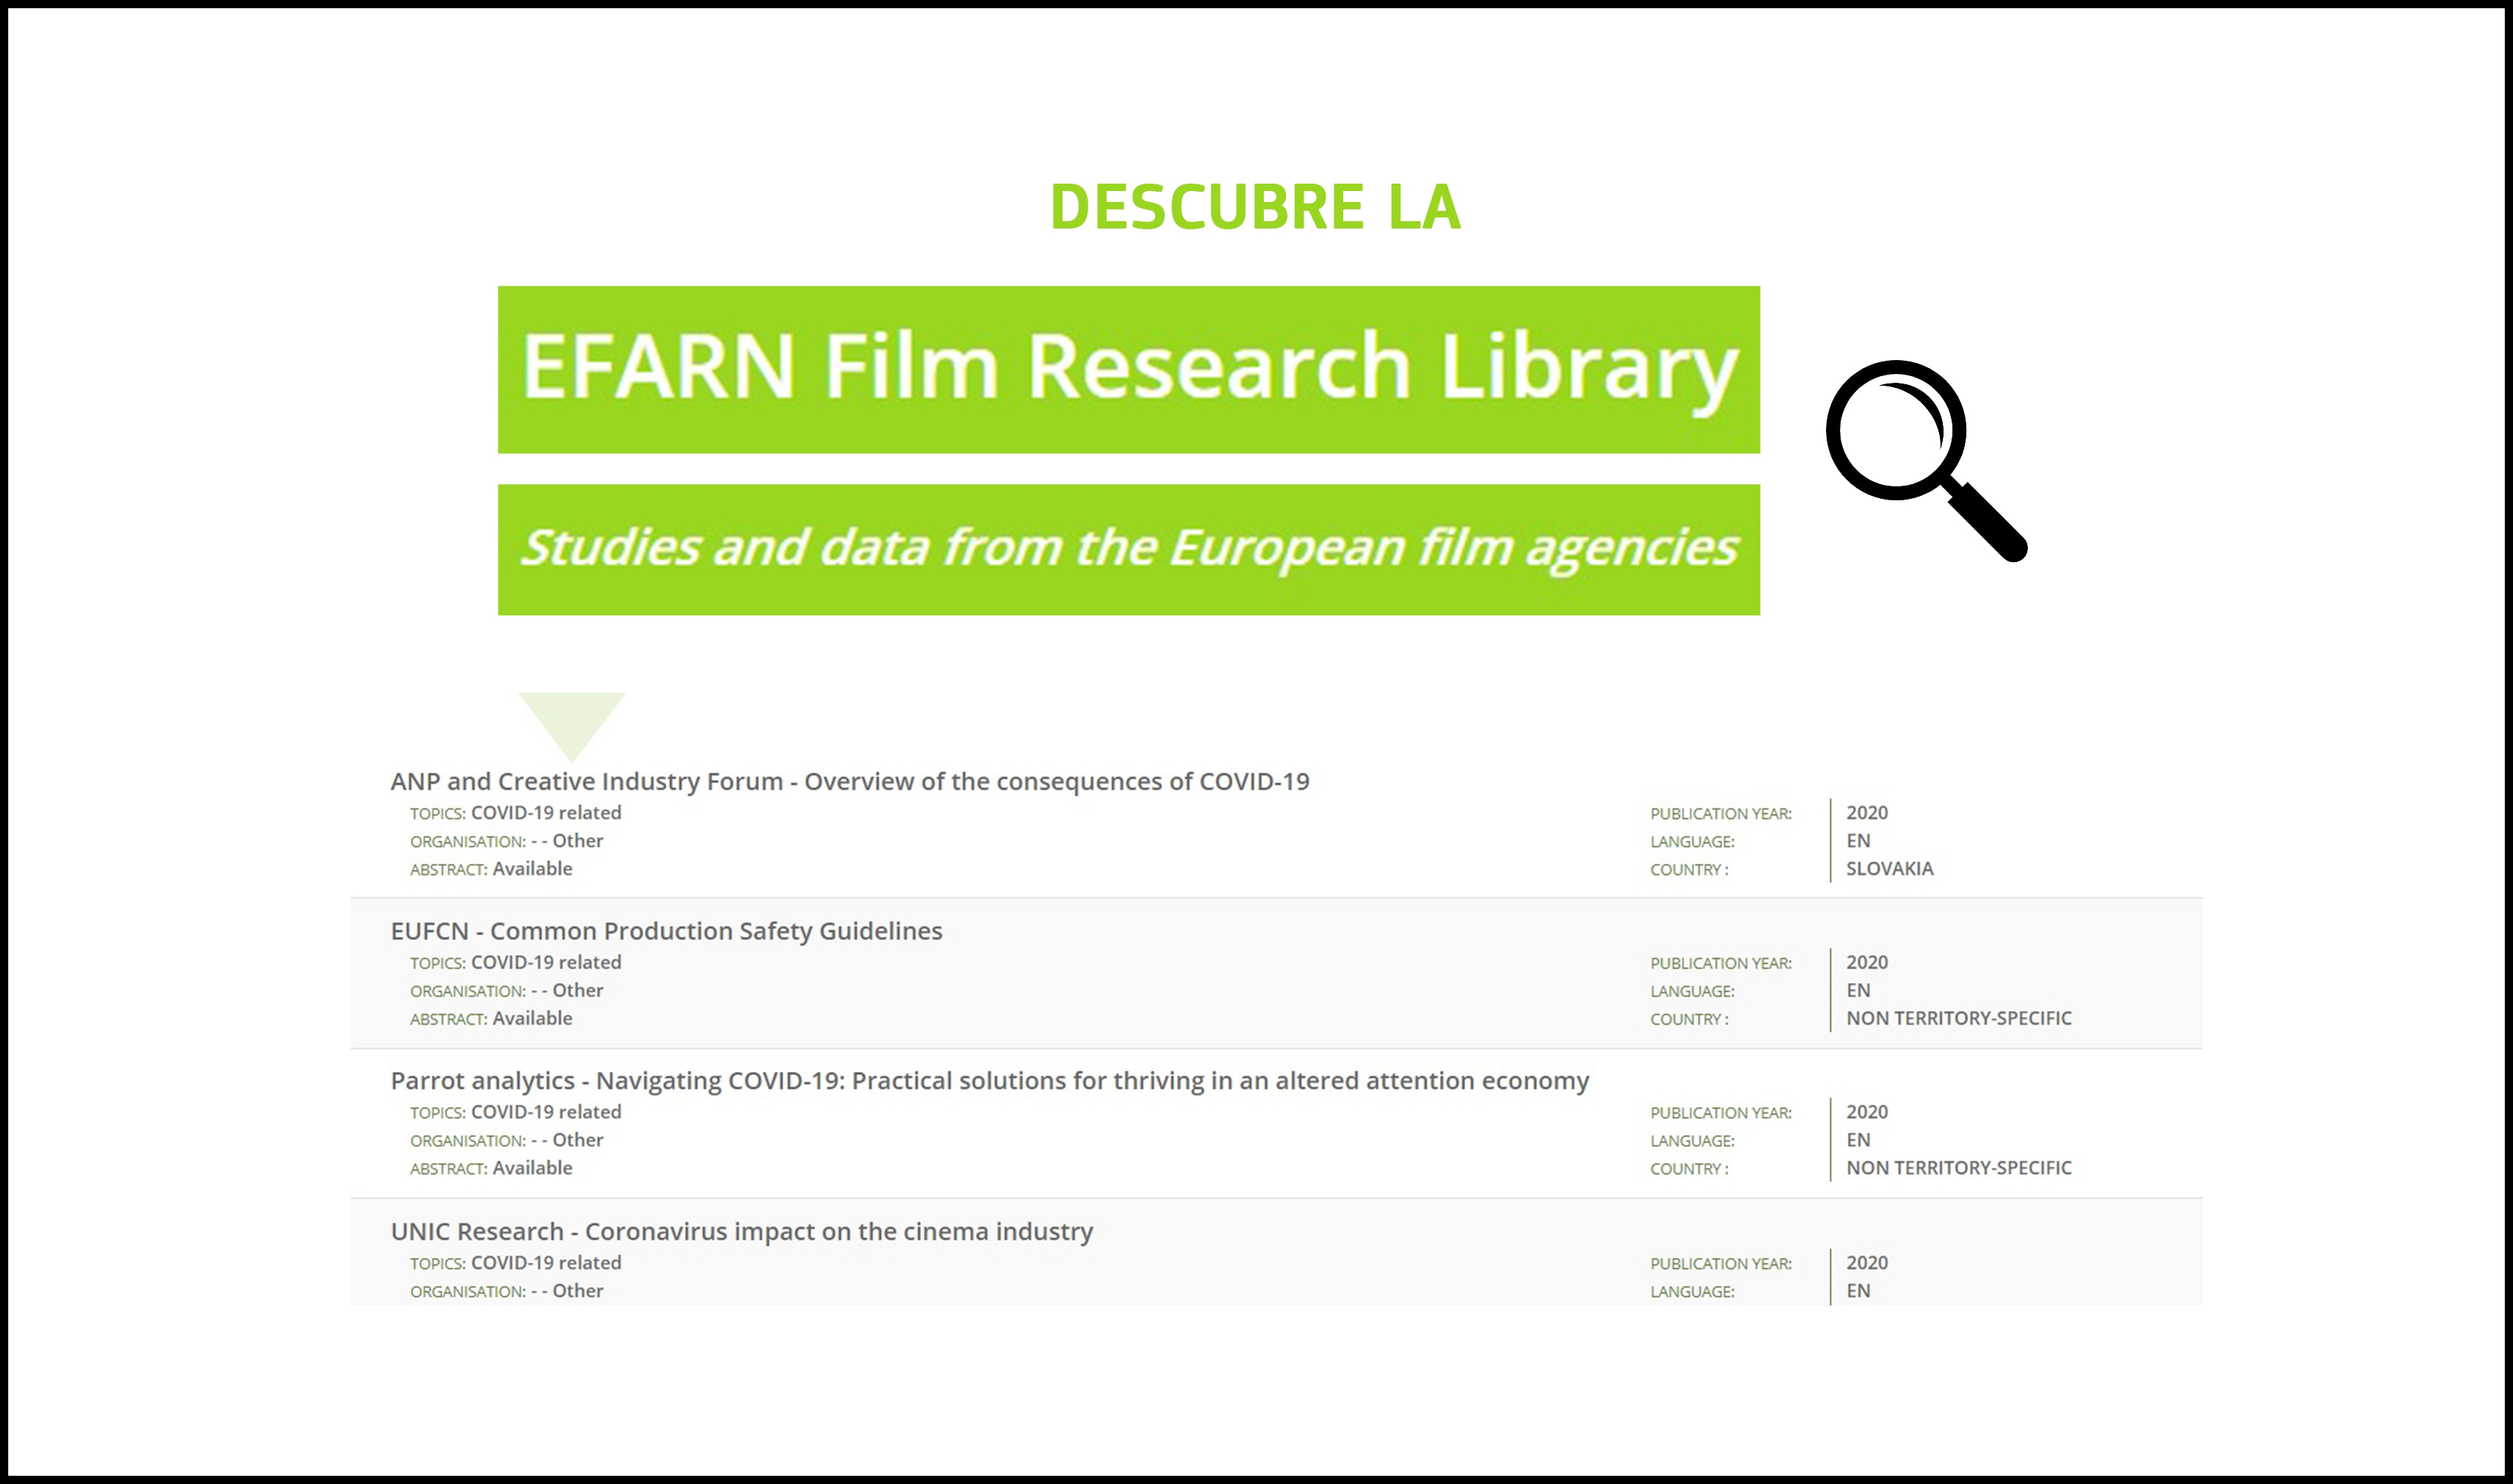 EFARN FILM RESEARCH LIBRARY: Descubre este recurso online